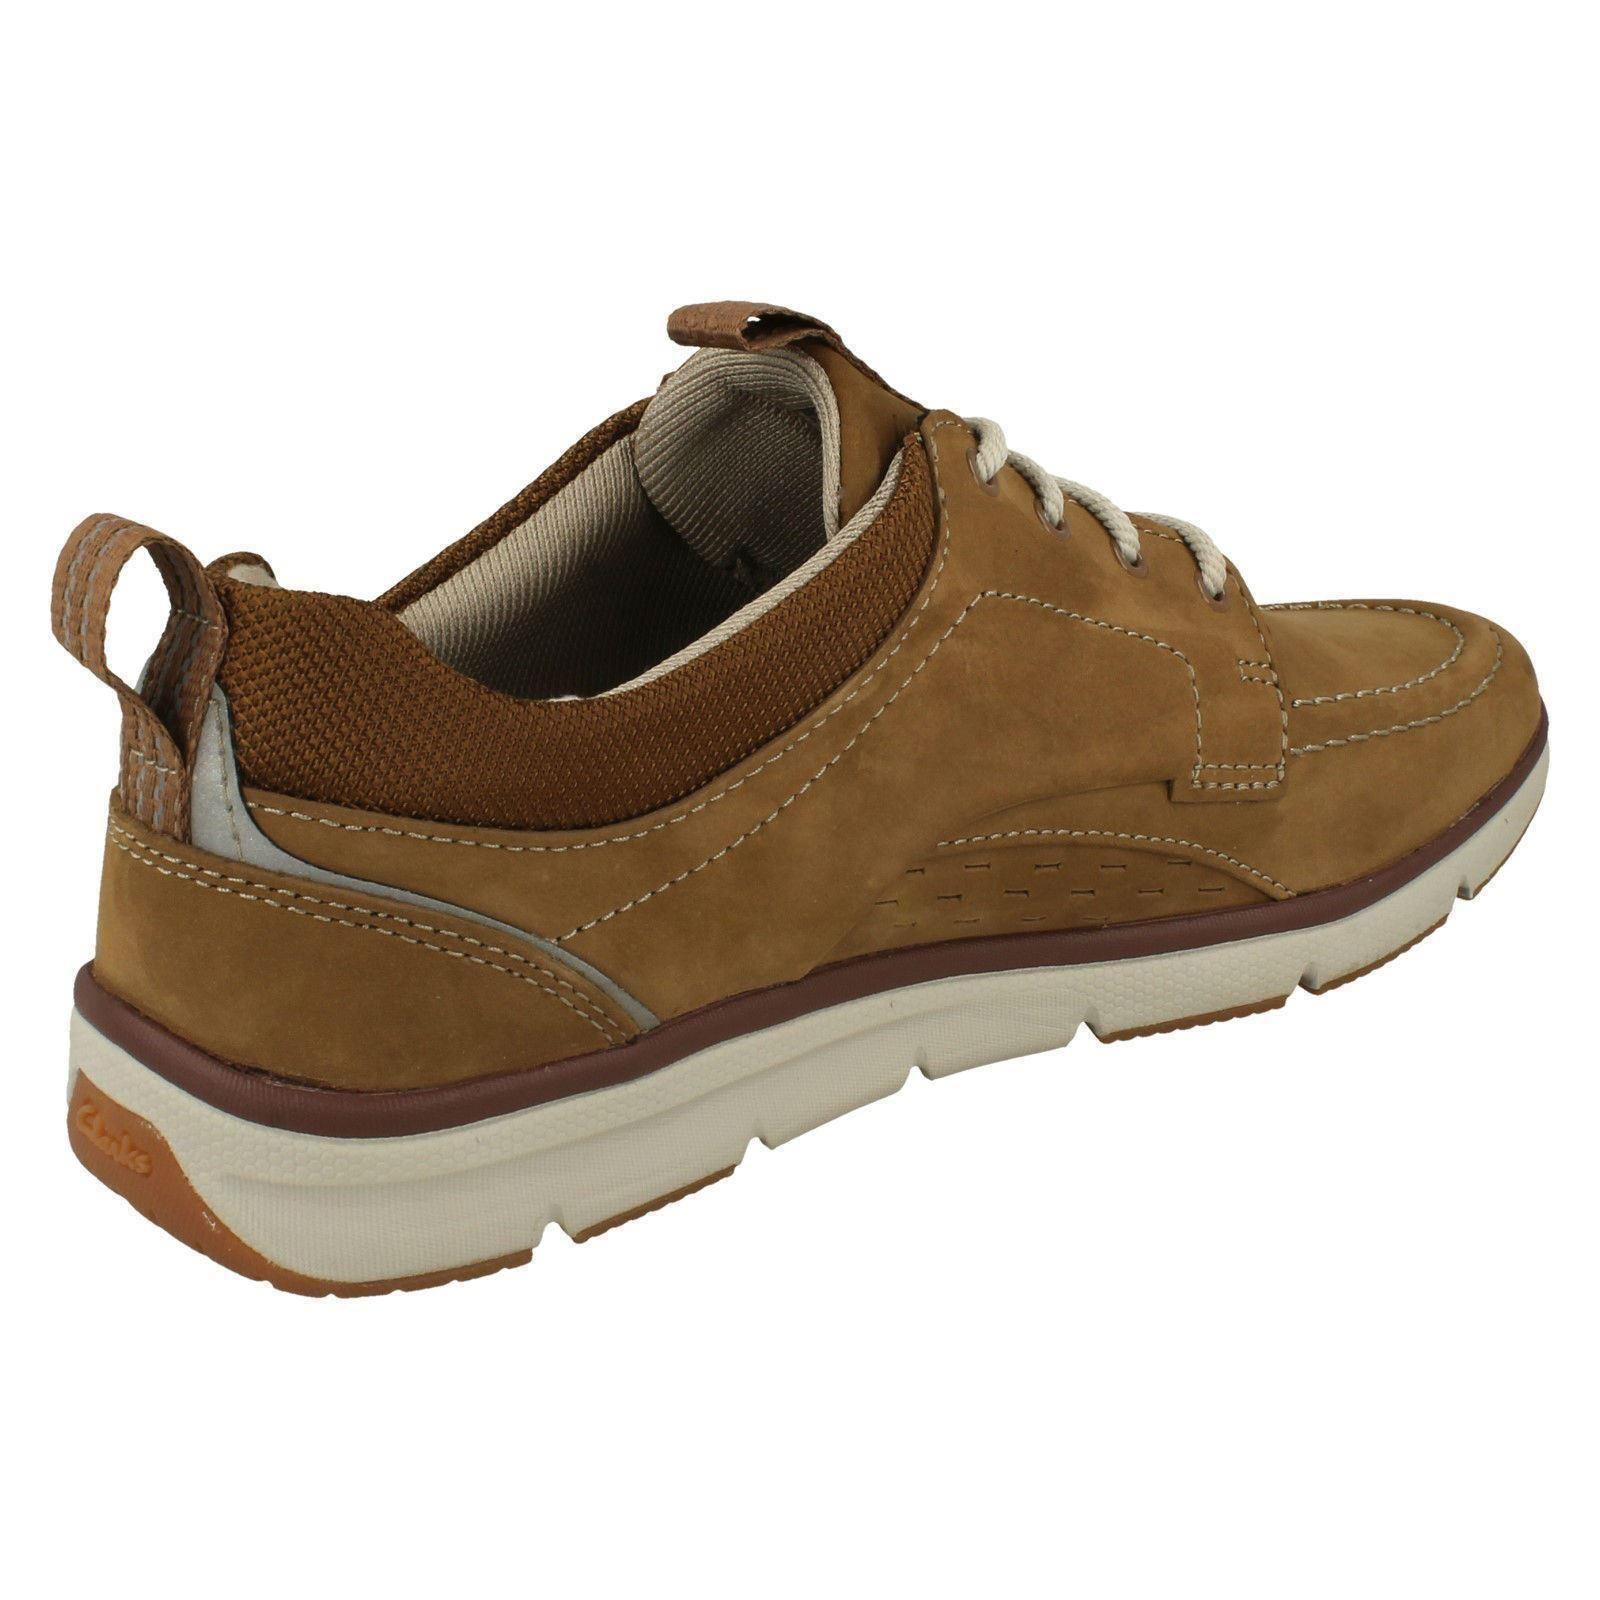 hot sales huge inventory premium selection Details about Mens Clarks Rounded Toe Casual Lace Up Nubuck & Textile Shoes  Orson Bay